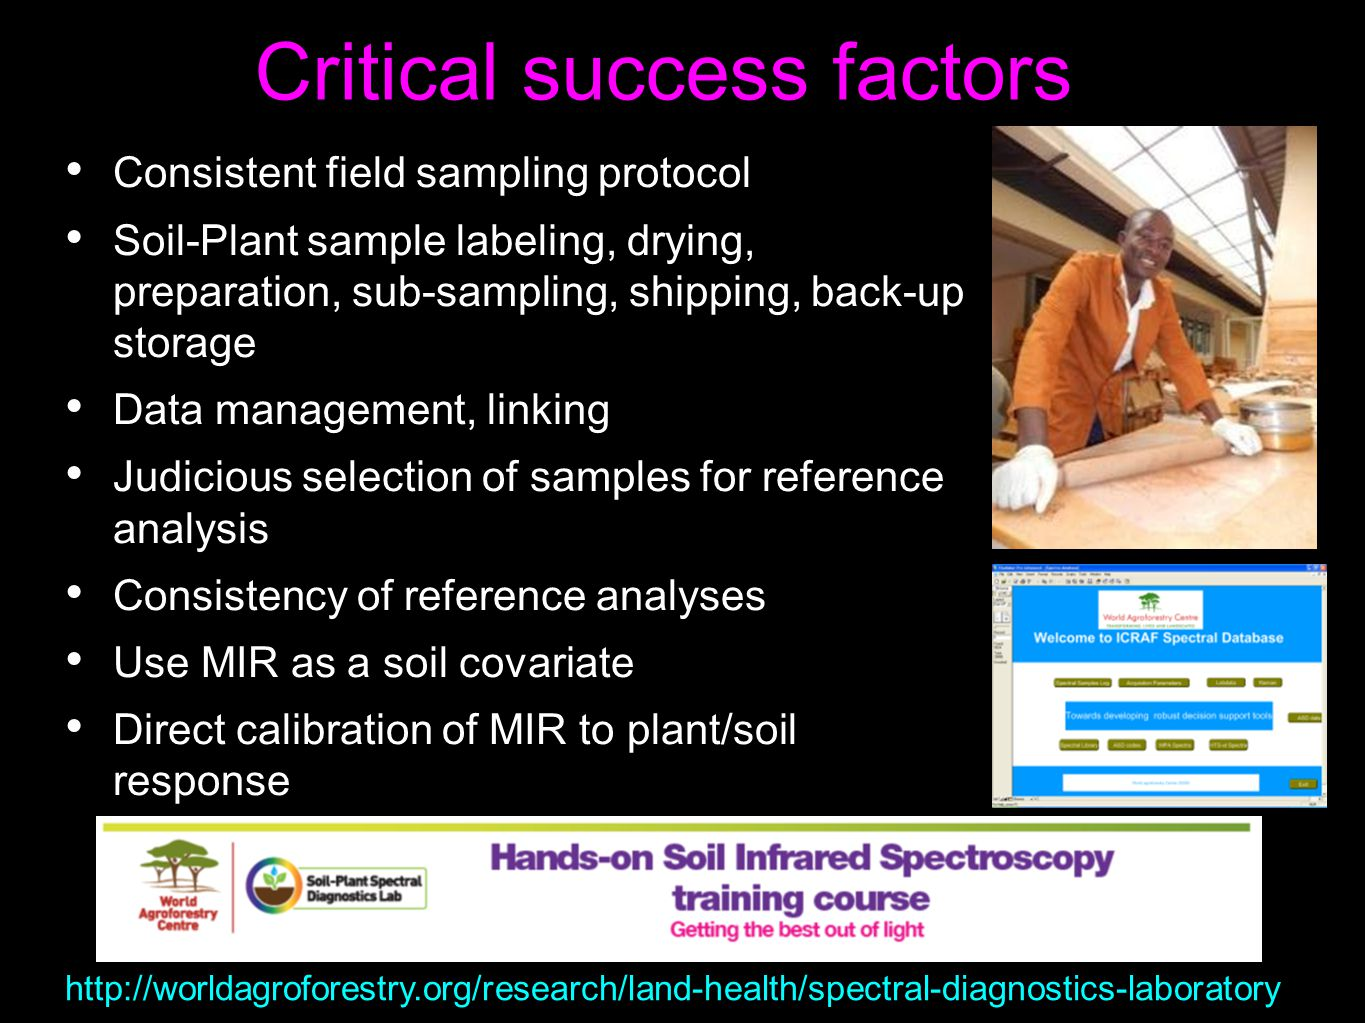 Critical success factors Consistent field sampling protocol Soil-Plant sample labeling, drying, preparation, sub-sampling, shipping, back-up storage Data management, linking Judicious selection of samples for reference analysis Consistency of reference analyses Use MIR as a soil covariate Direct calibration of MIR to plant/soil response http://worldagroforestry.org/research/land-health/spectral-diagnostics-laboratory